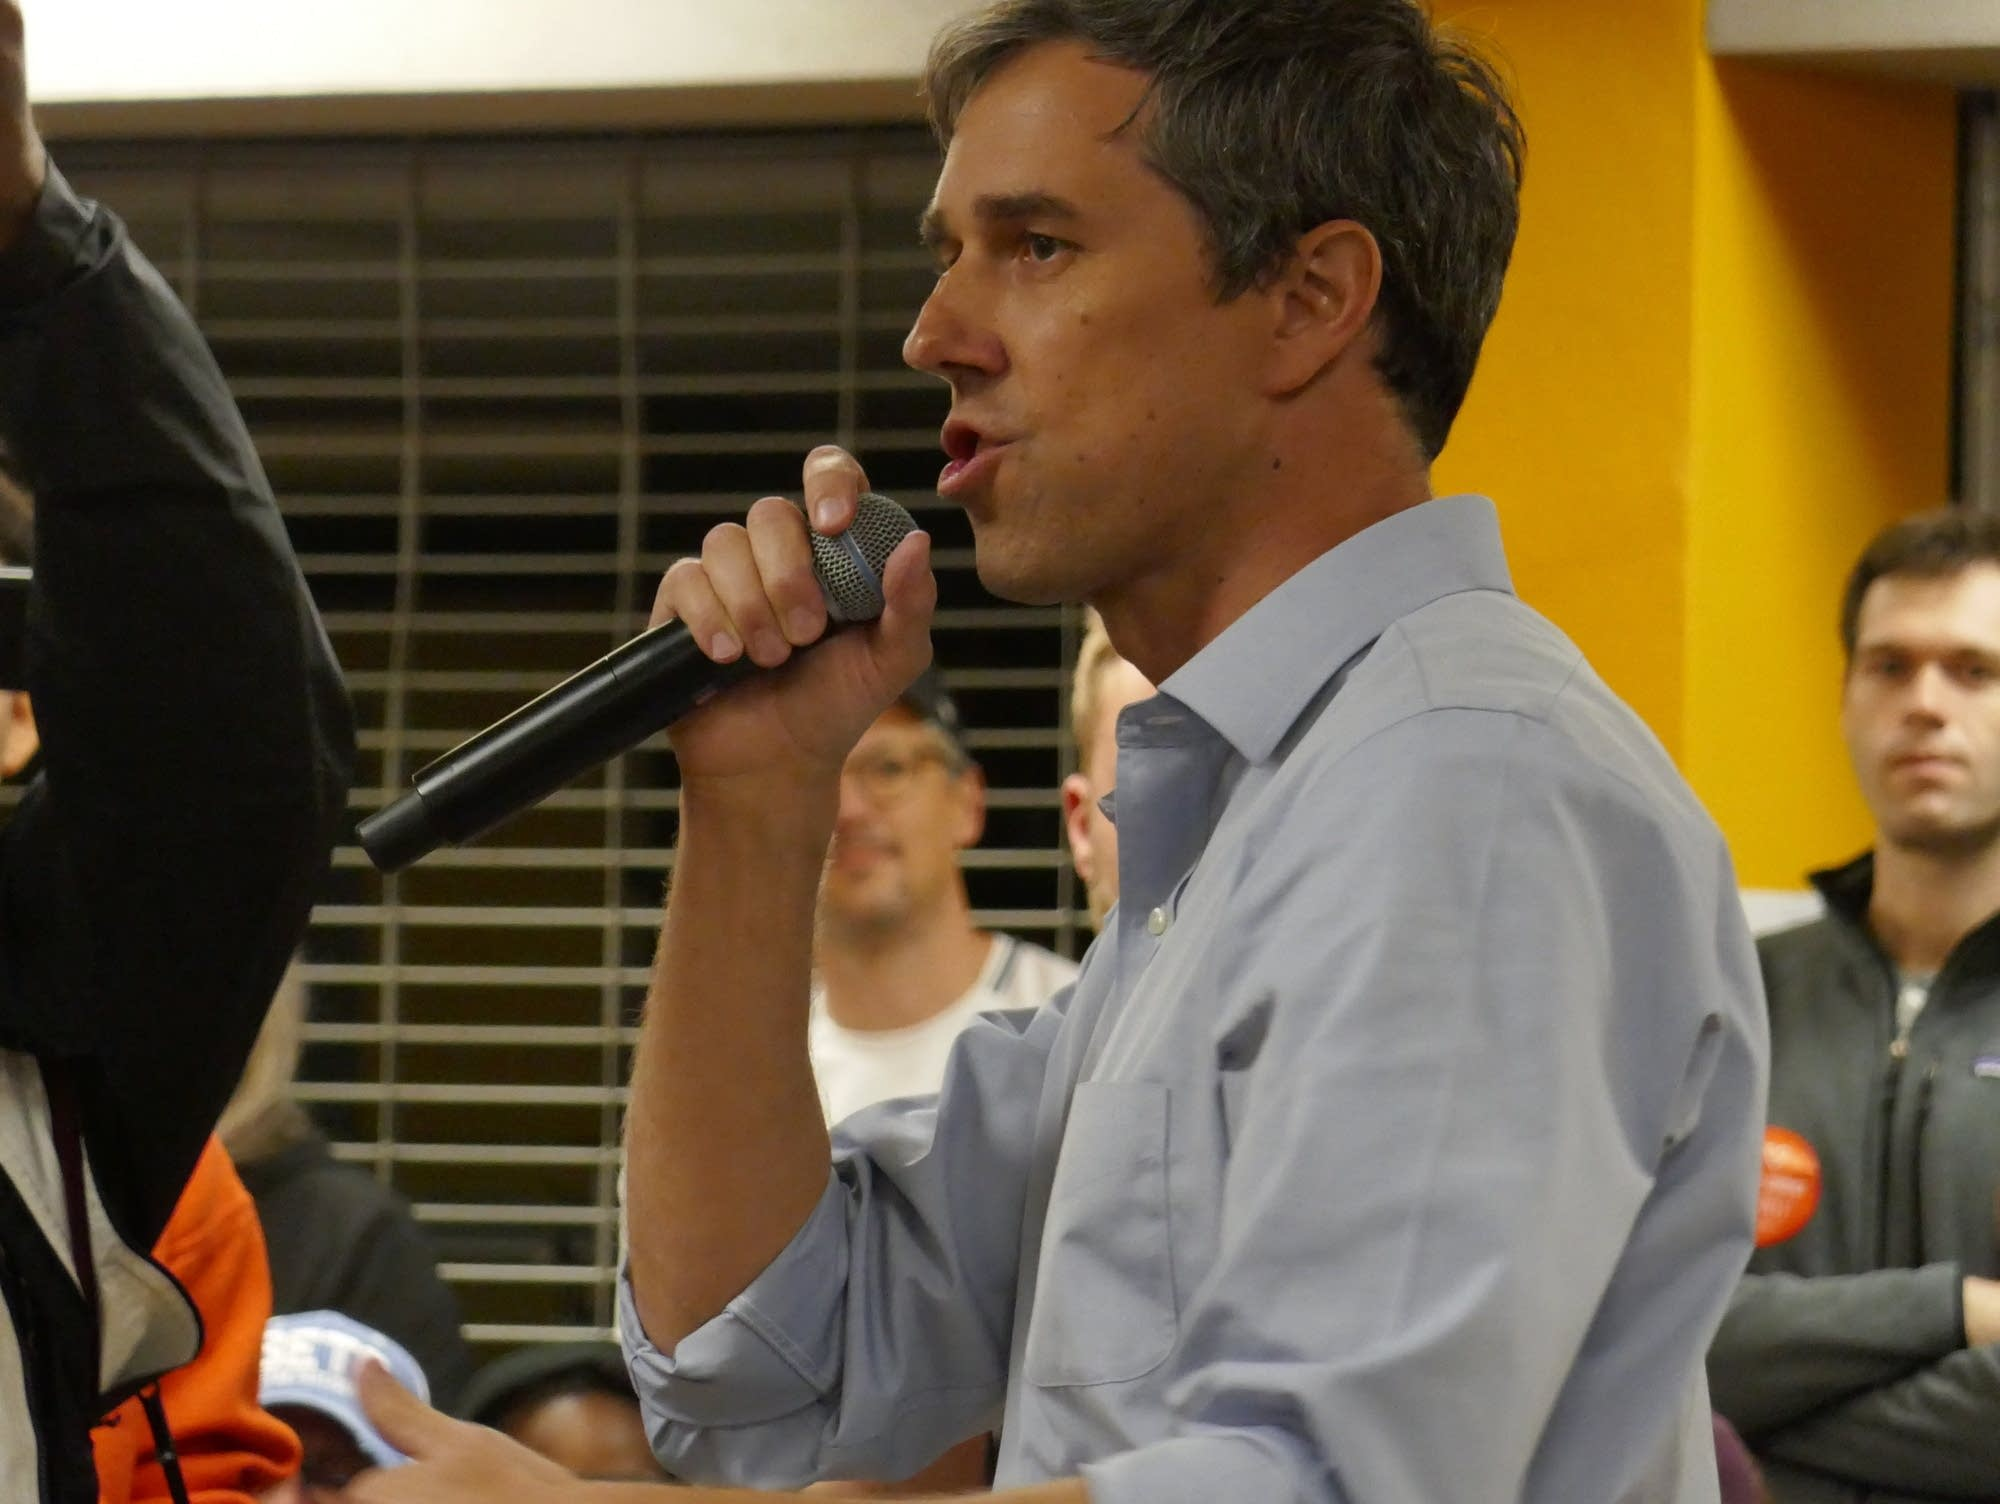 Democratic presidential candidate Beto O'Rourke speaks during a town hall